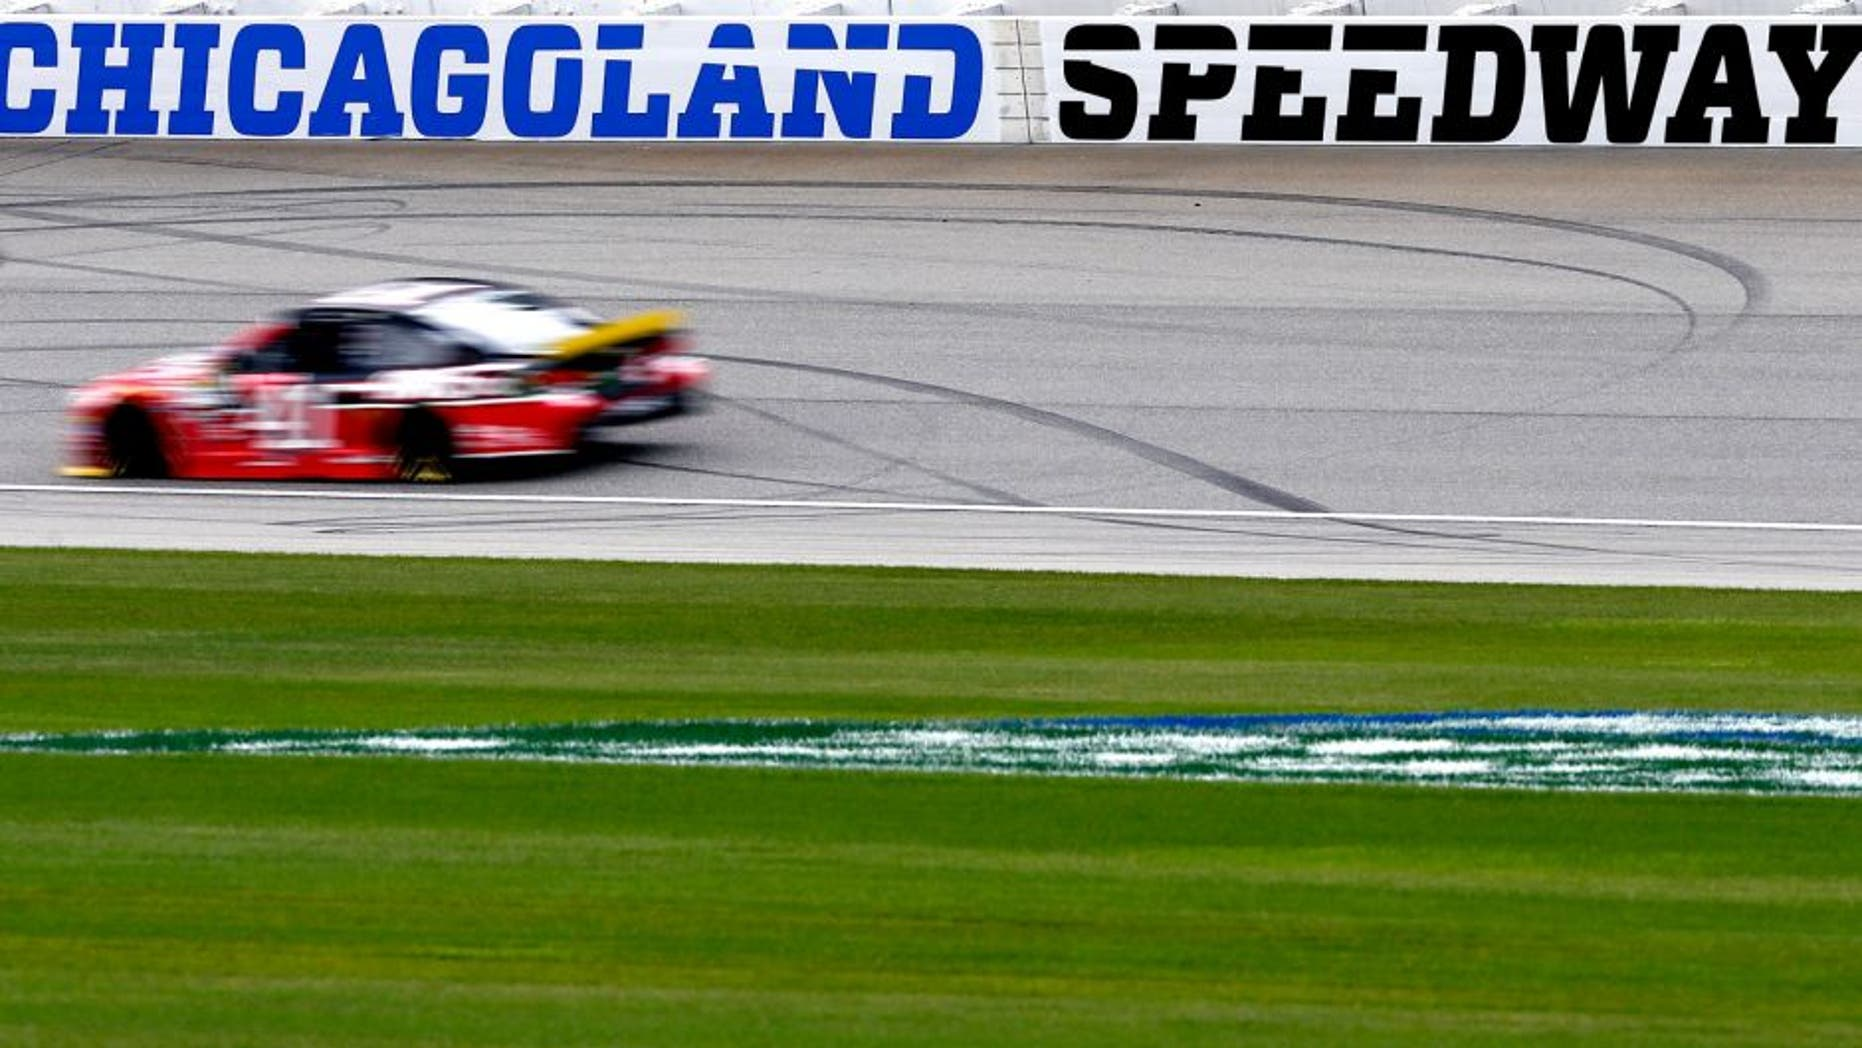 JOLIET, IL - SEPTEMBER 18: Kurt Busch, driver of the #41 Haas Automation Chevrolet, practices for the NASCAR Sprint Cup Series myAFibRisk.com 400 at Chicagoland Speedway on September 18, 2015 in Joliet, Illinois. (Photo by Jeff Zelevansky/NASCAR via Getty Images)